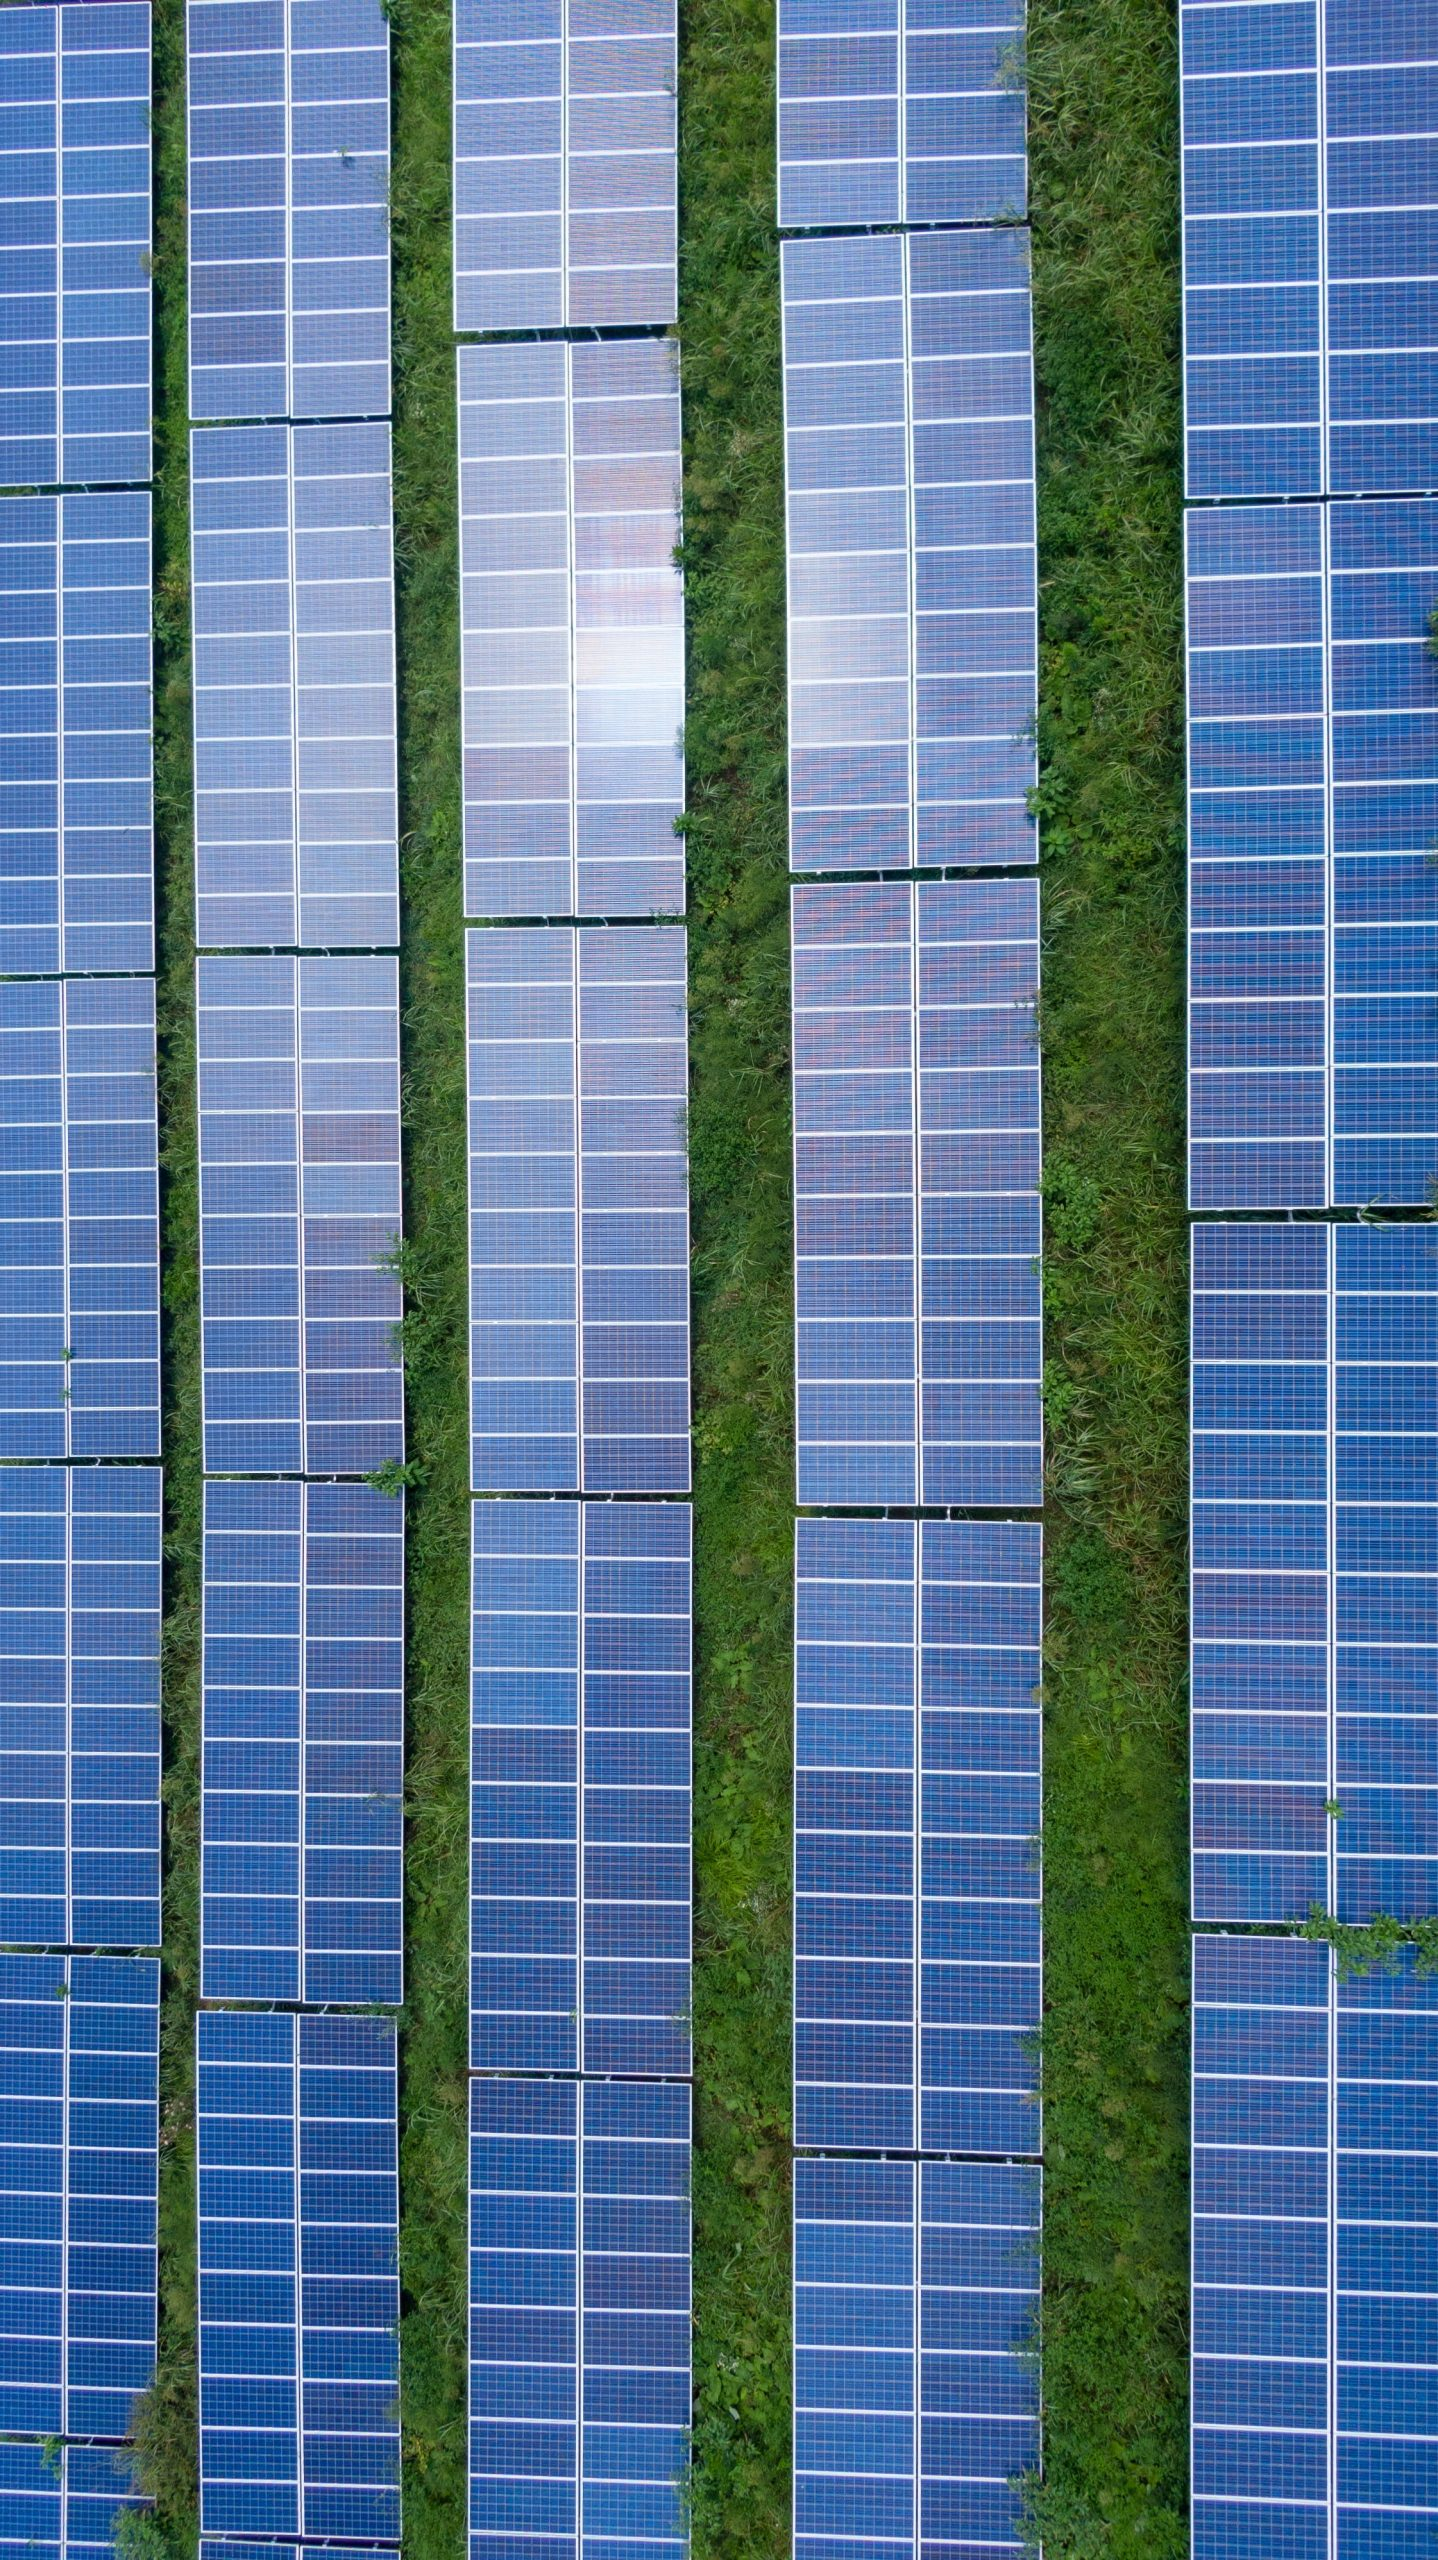 top-view-photo-of-solar-panels-2800832